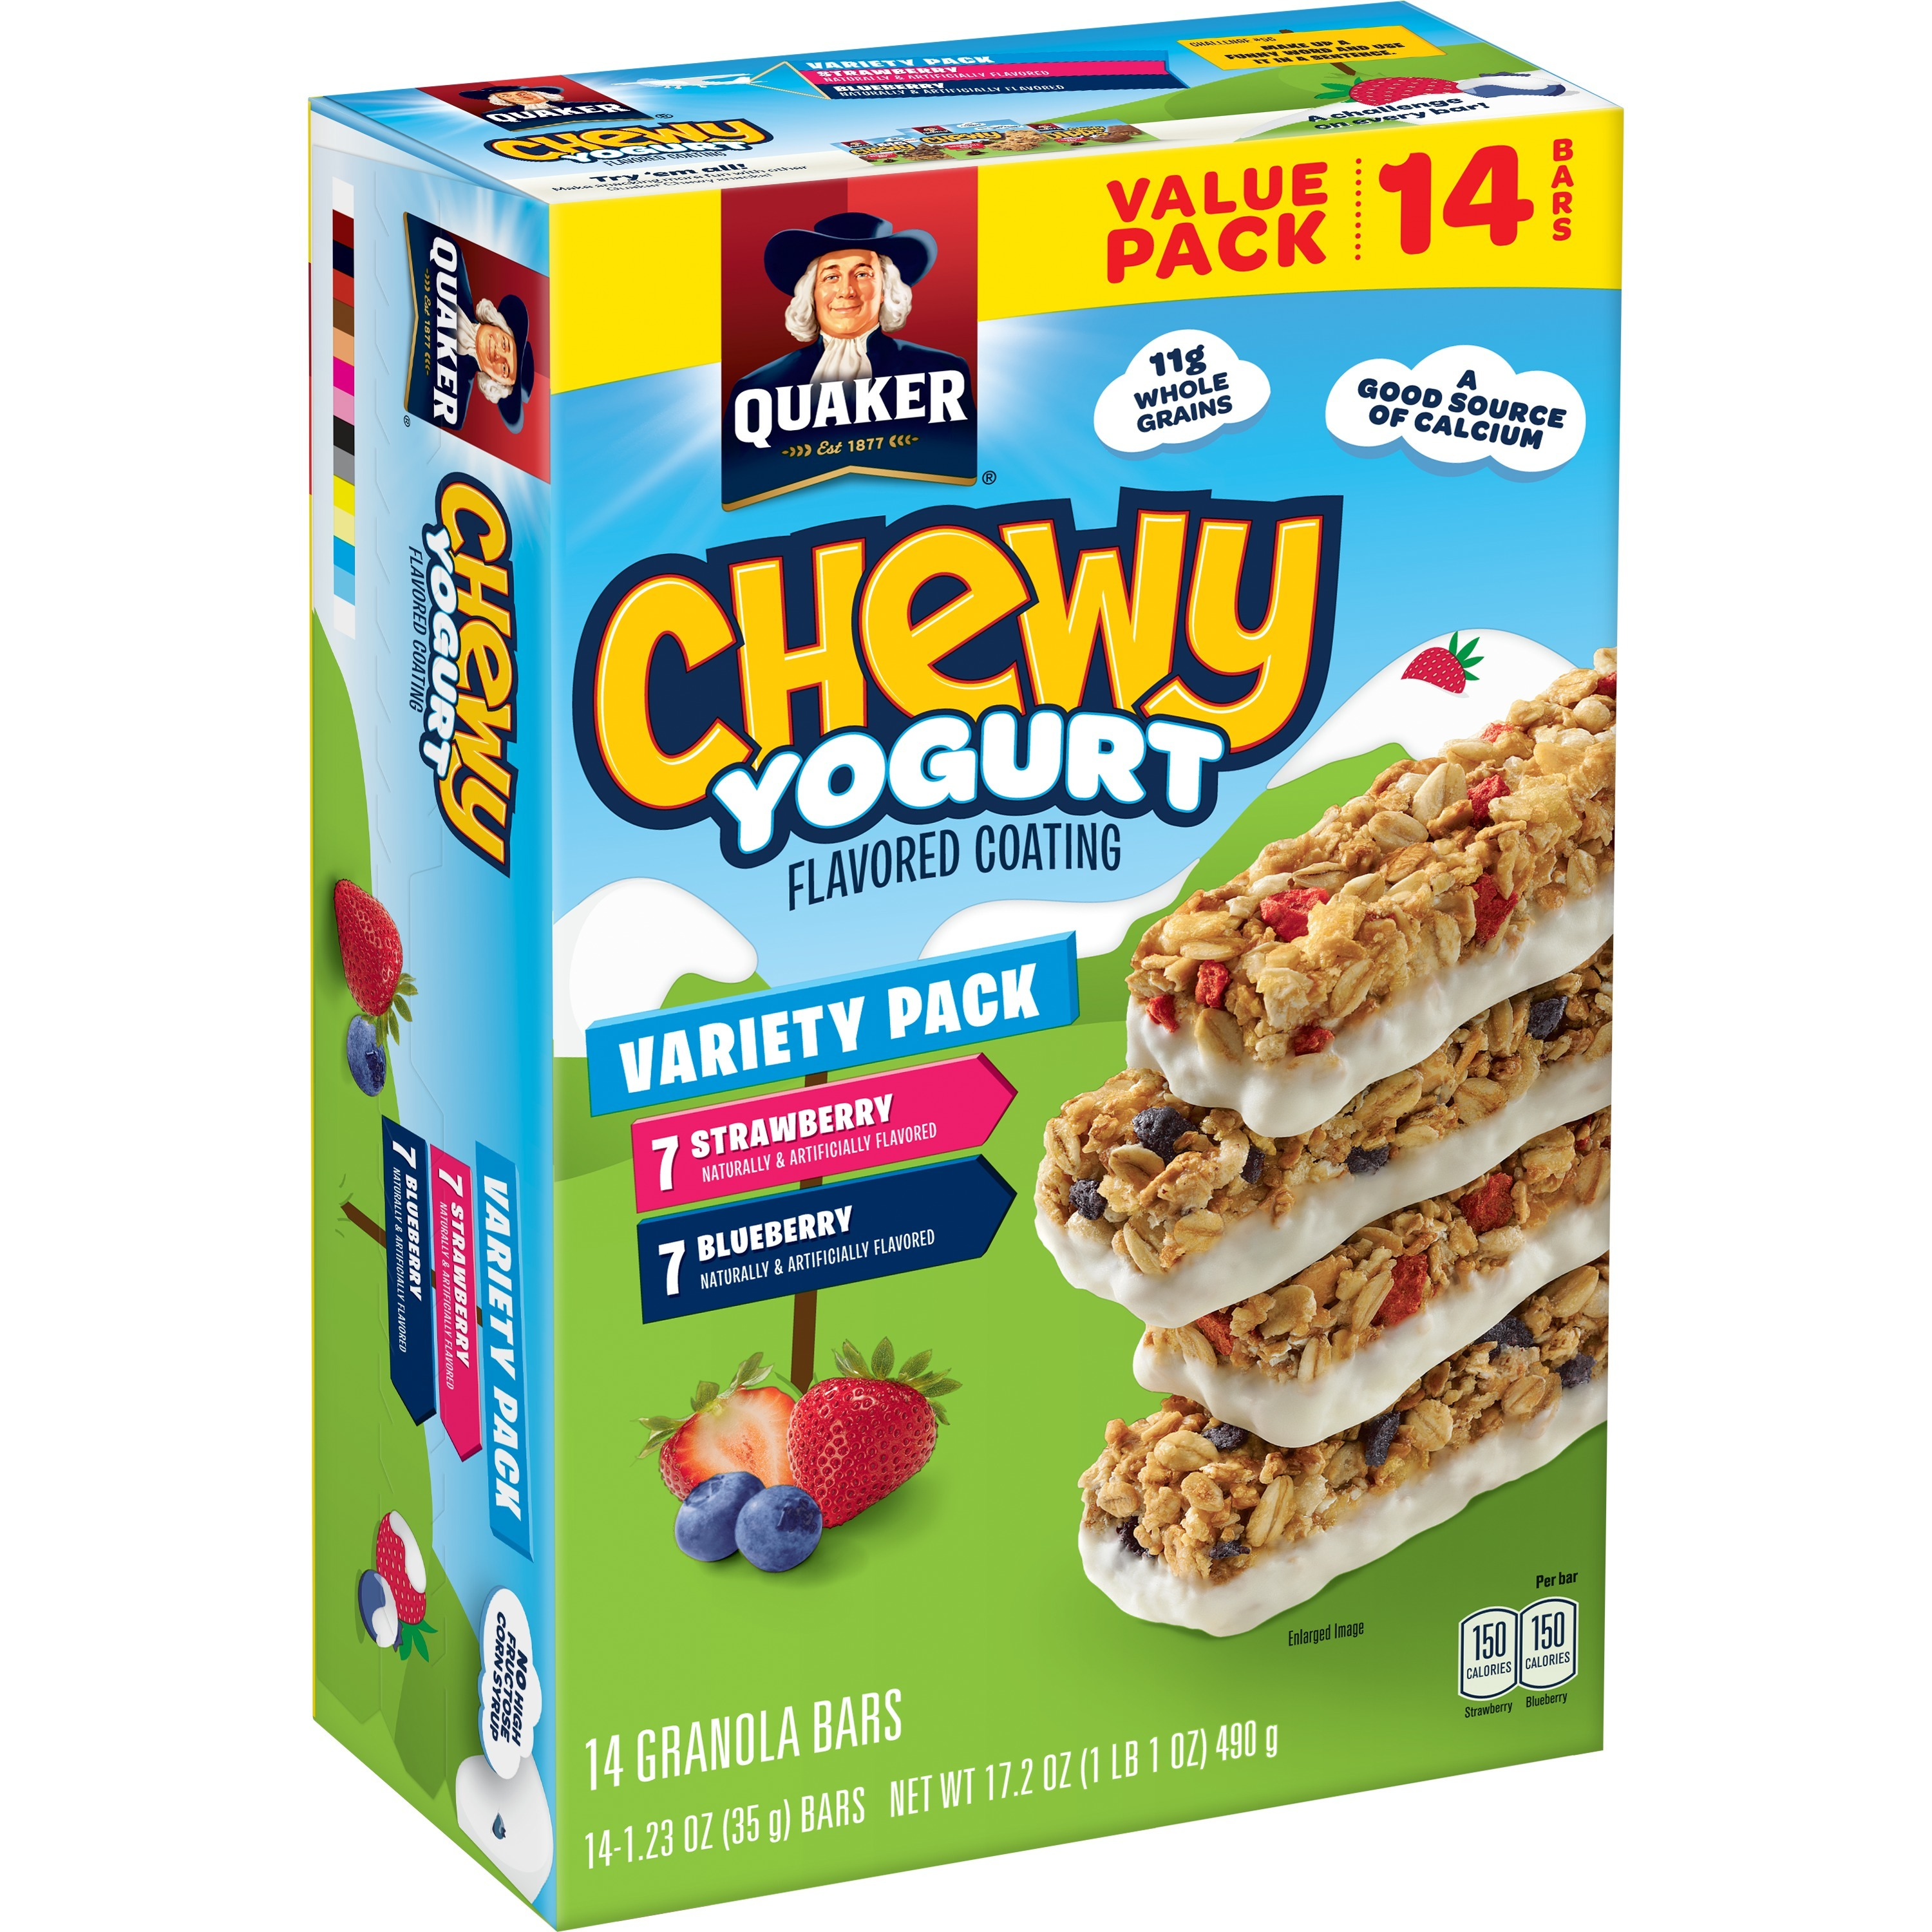 (3 Pack) Quaker Chewy Yogurt Granola Bars, Variety Pack, 14 Count